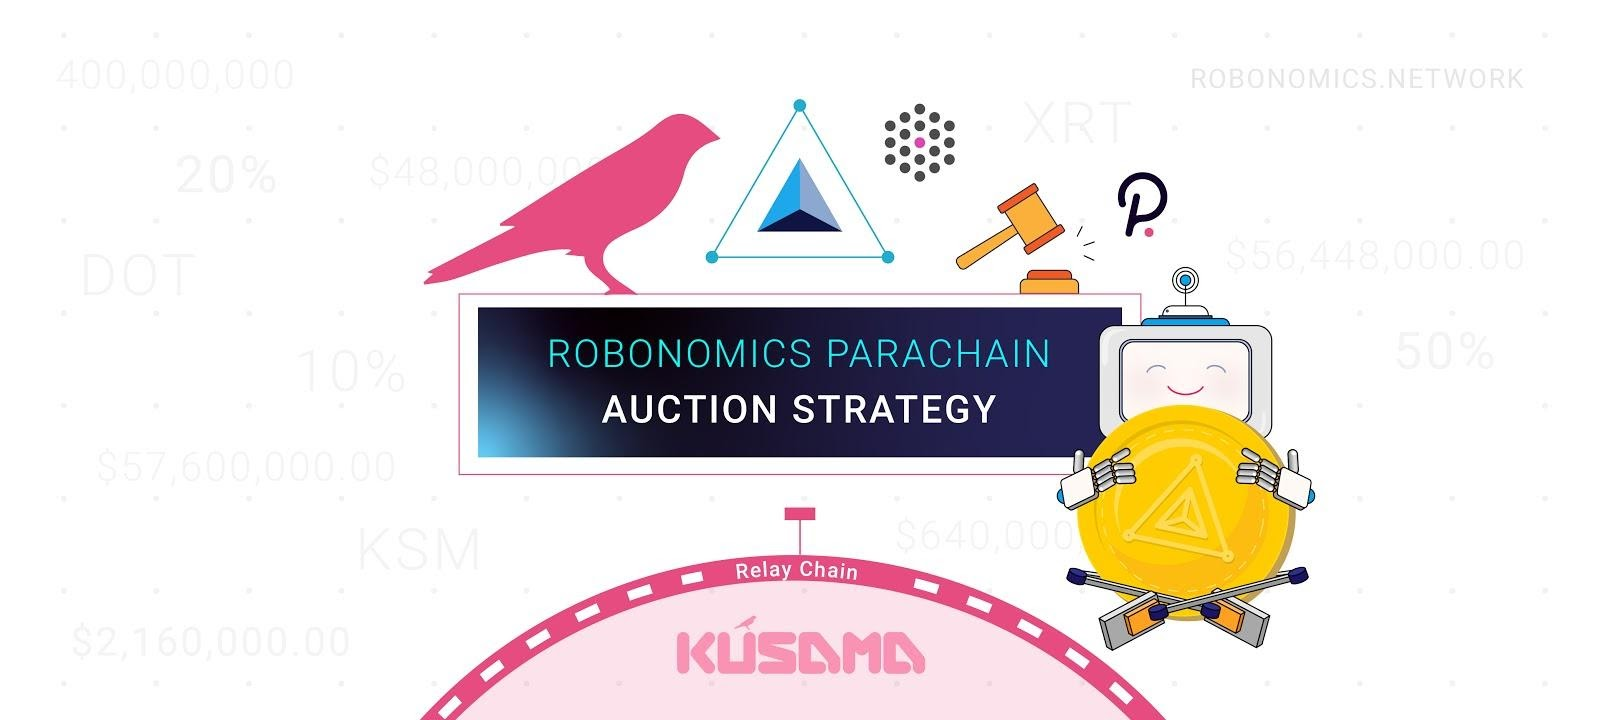 Robonomics Network values Polkadot slot at $ 3–6 million